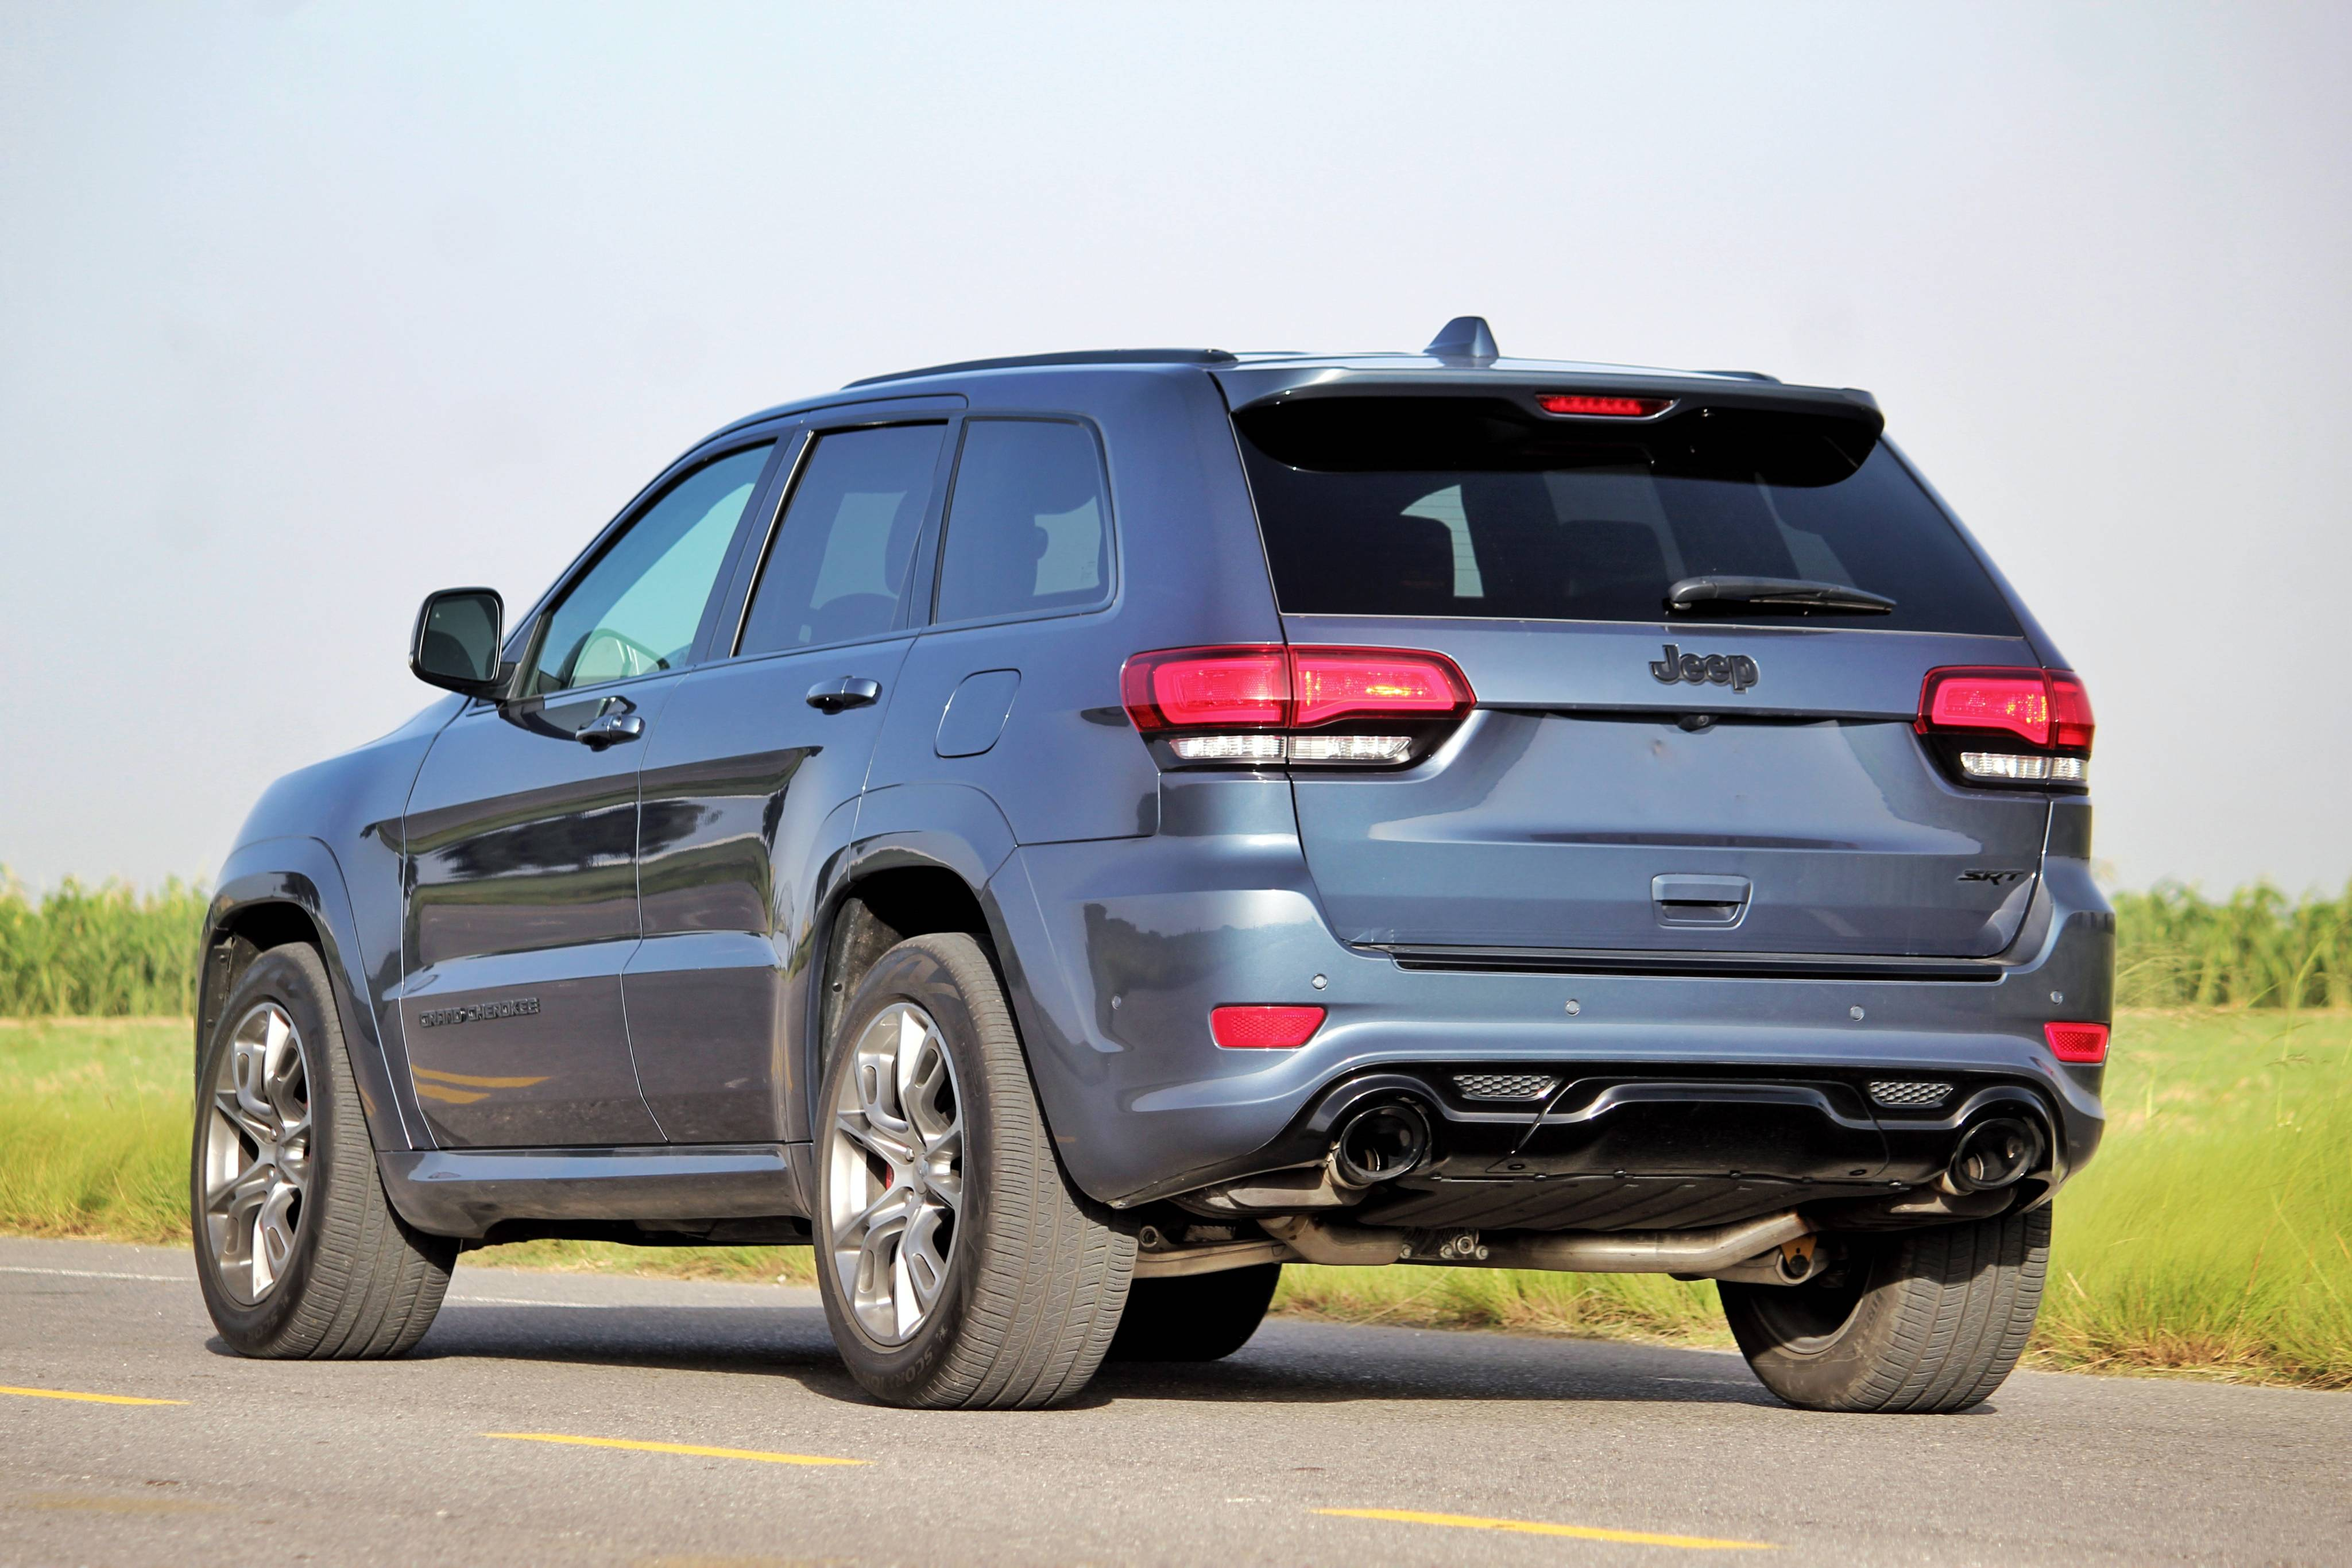 JEEP GRAND CHEROKEE SRT BLUE EDITION trasera